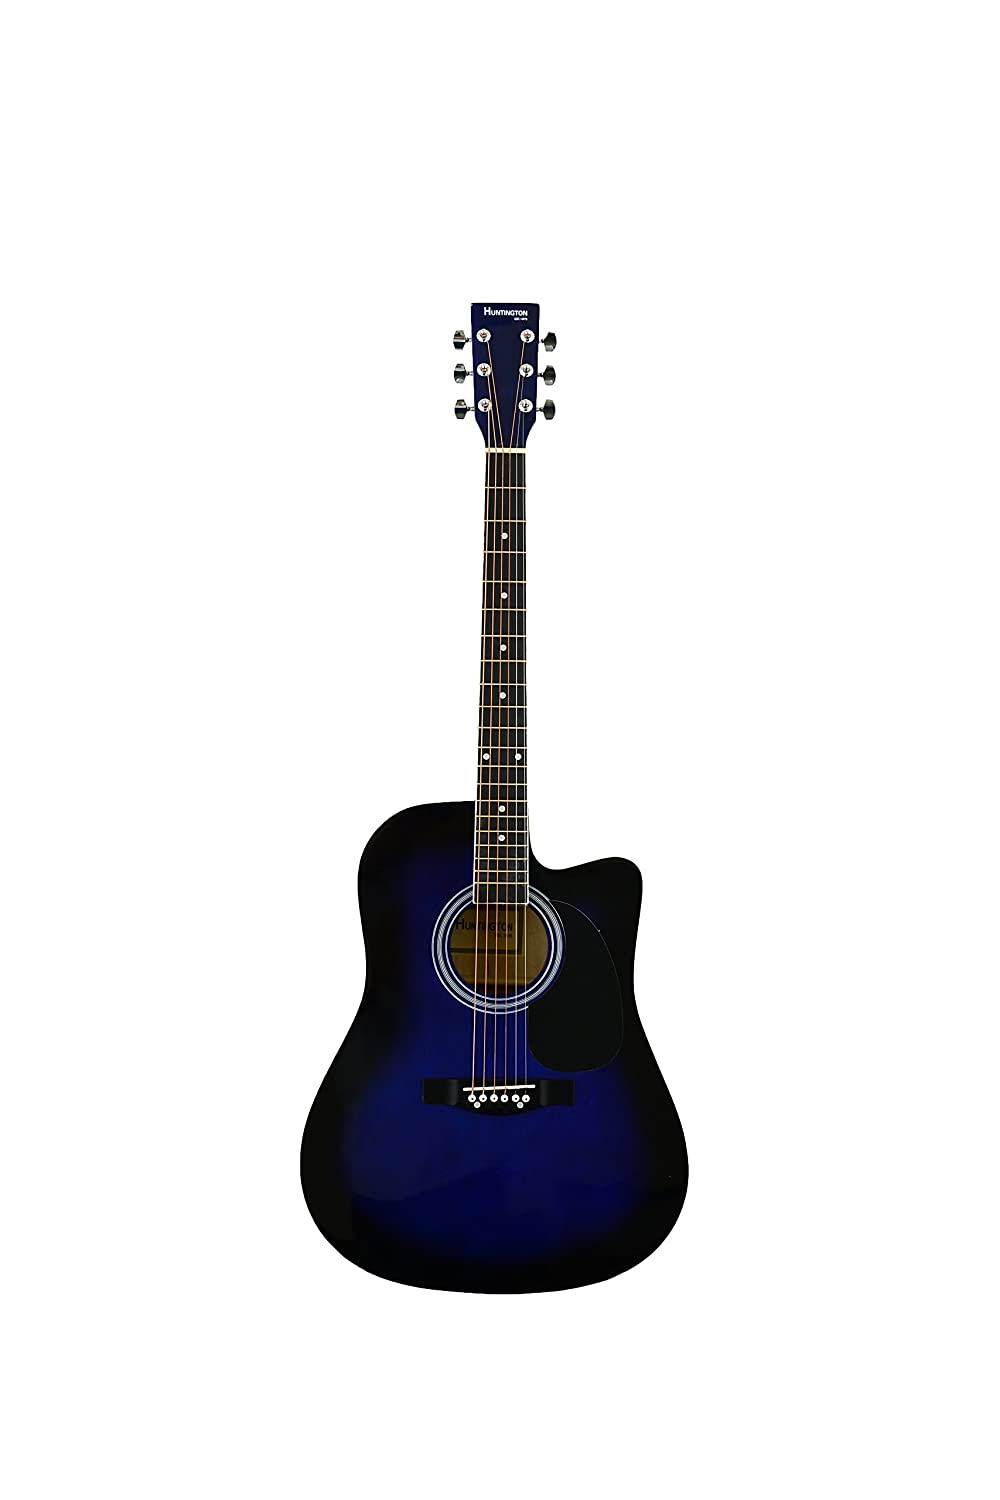 Huntington GA41C-RDS 41-Inch Acoustic Cutaway Guitar, Red Sunburst